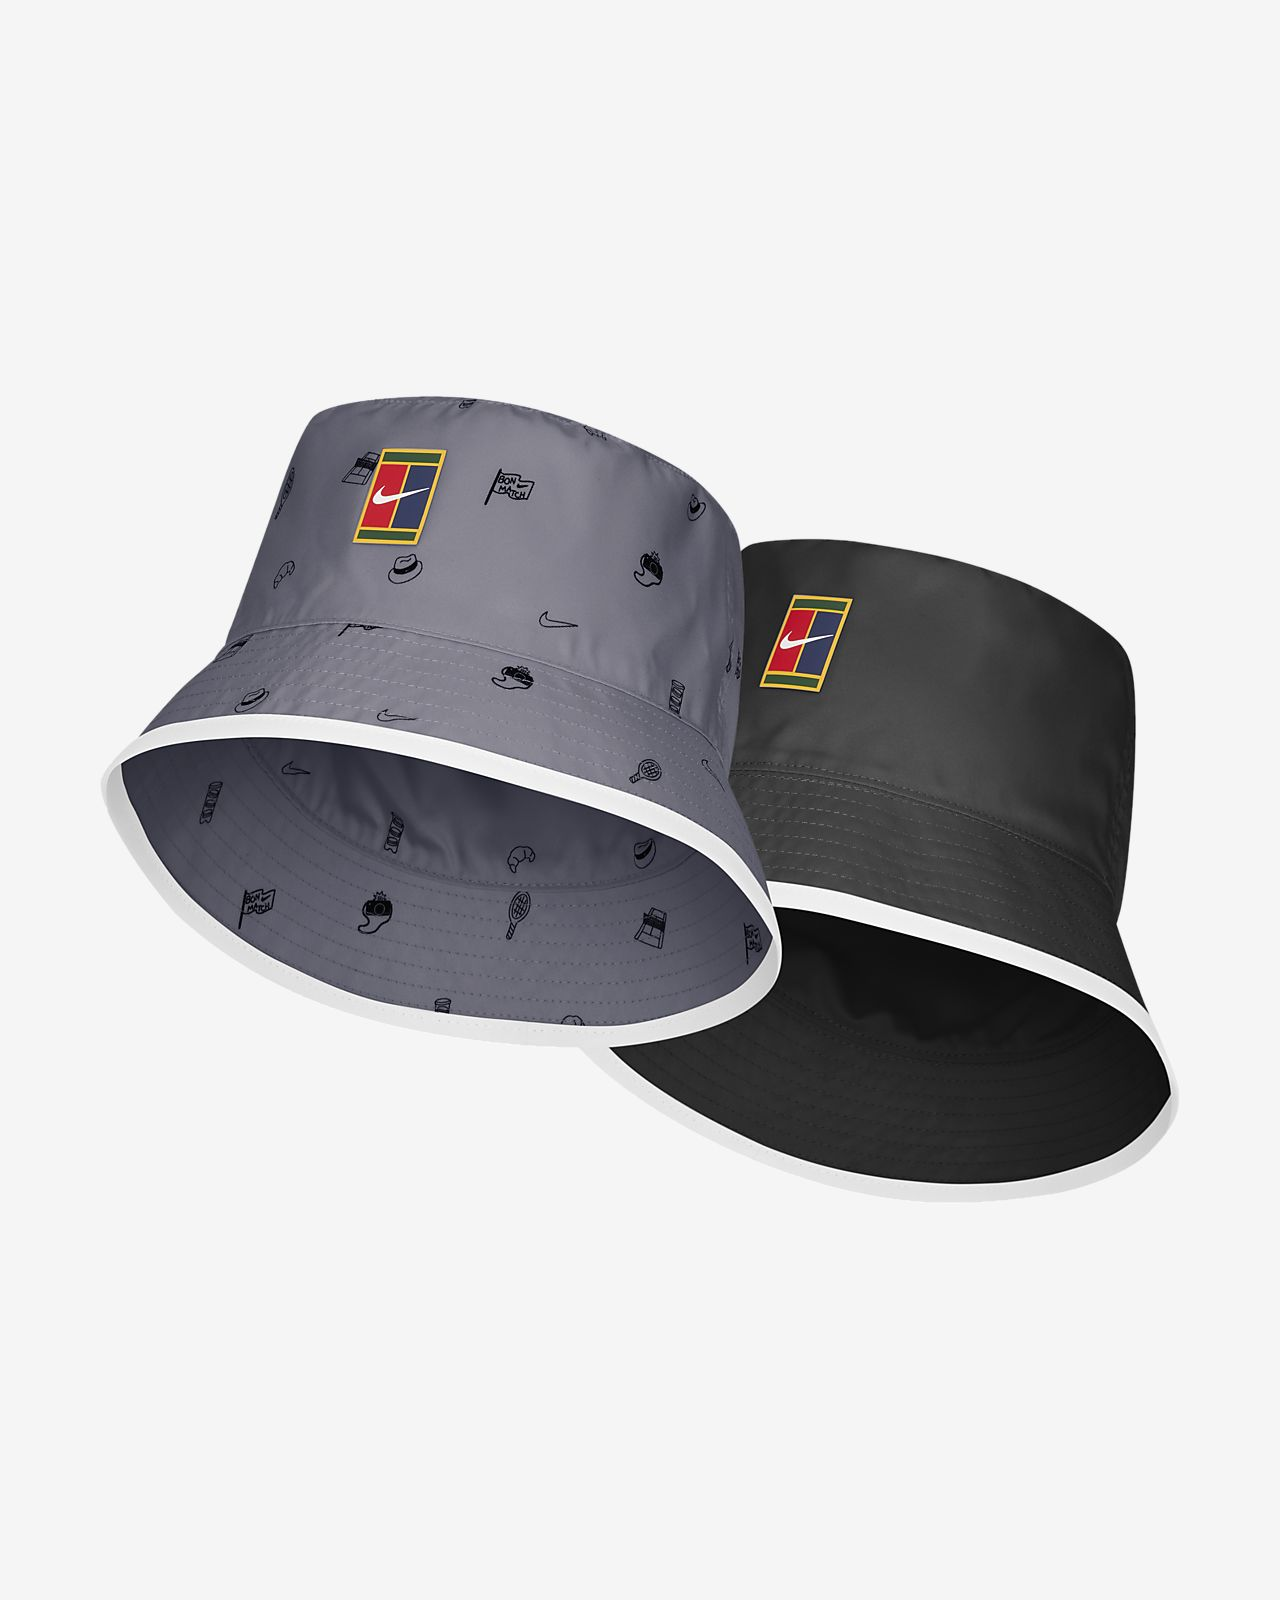 NikeCourt wendbarer Tennis Bucket Hat